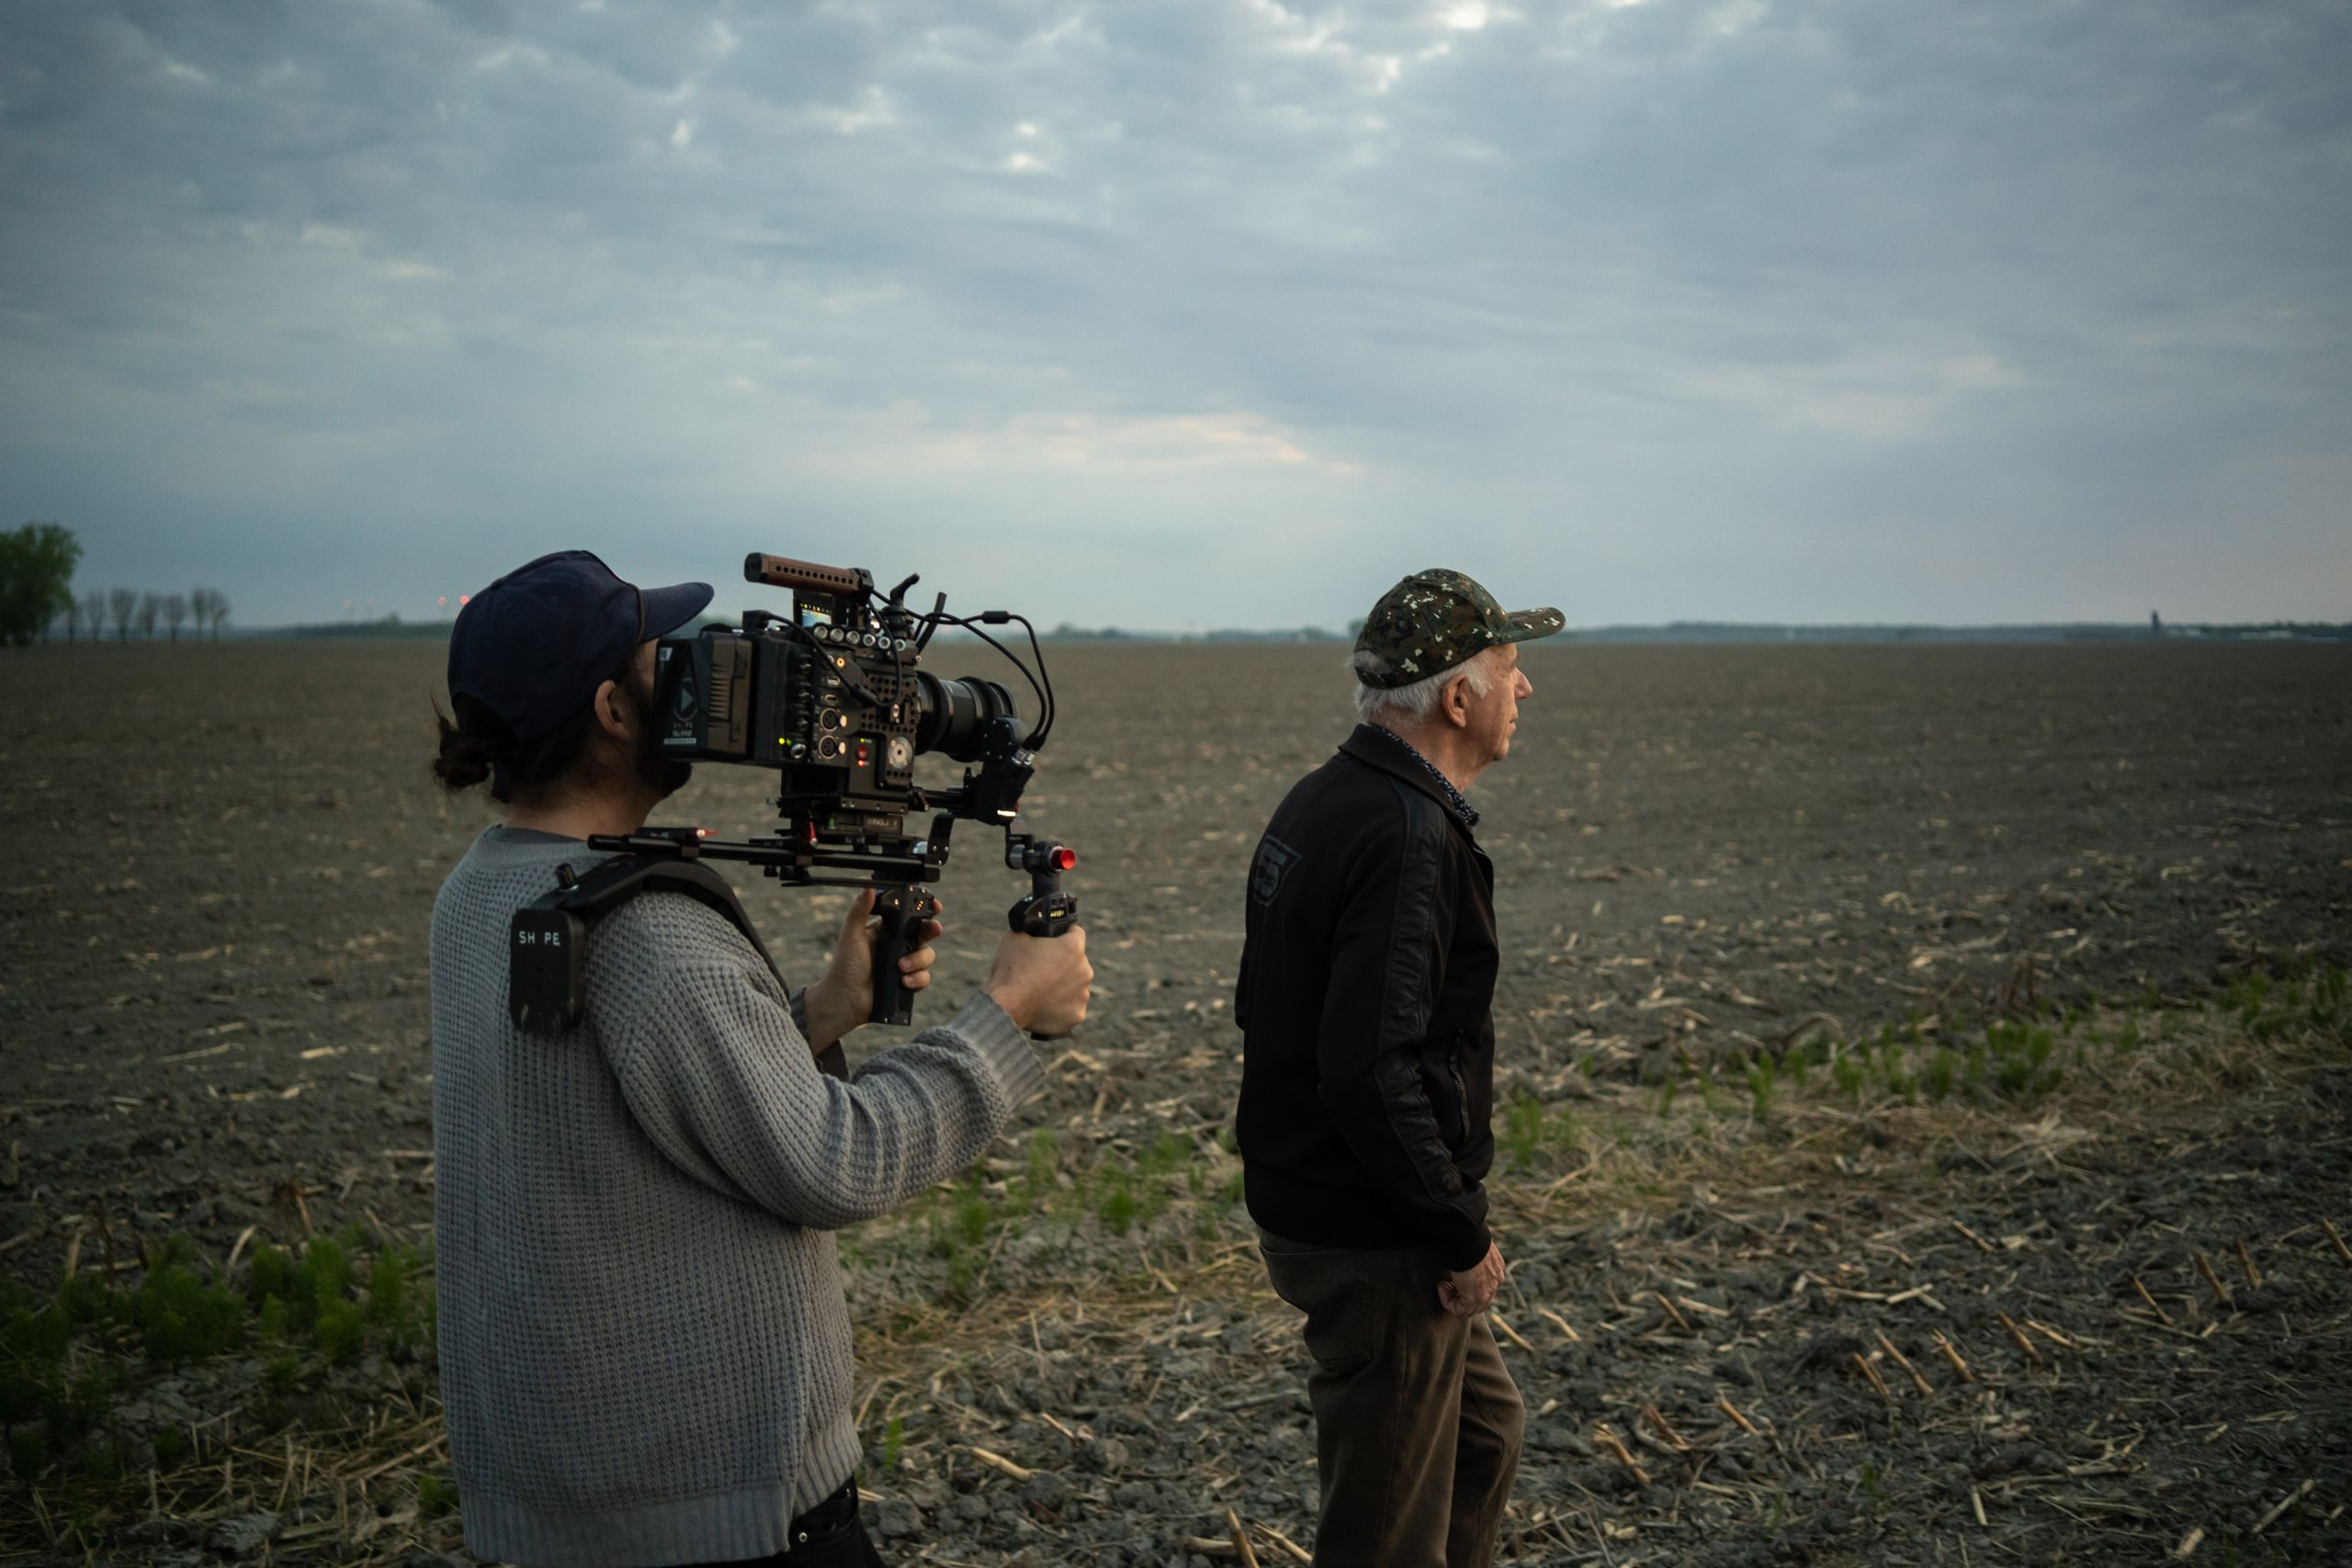 Behind the scenes picture. We see a camera man filming Jonas Sivo walking in his field.